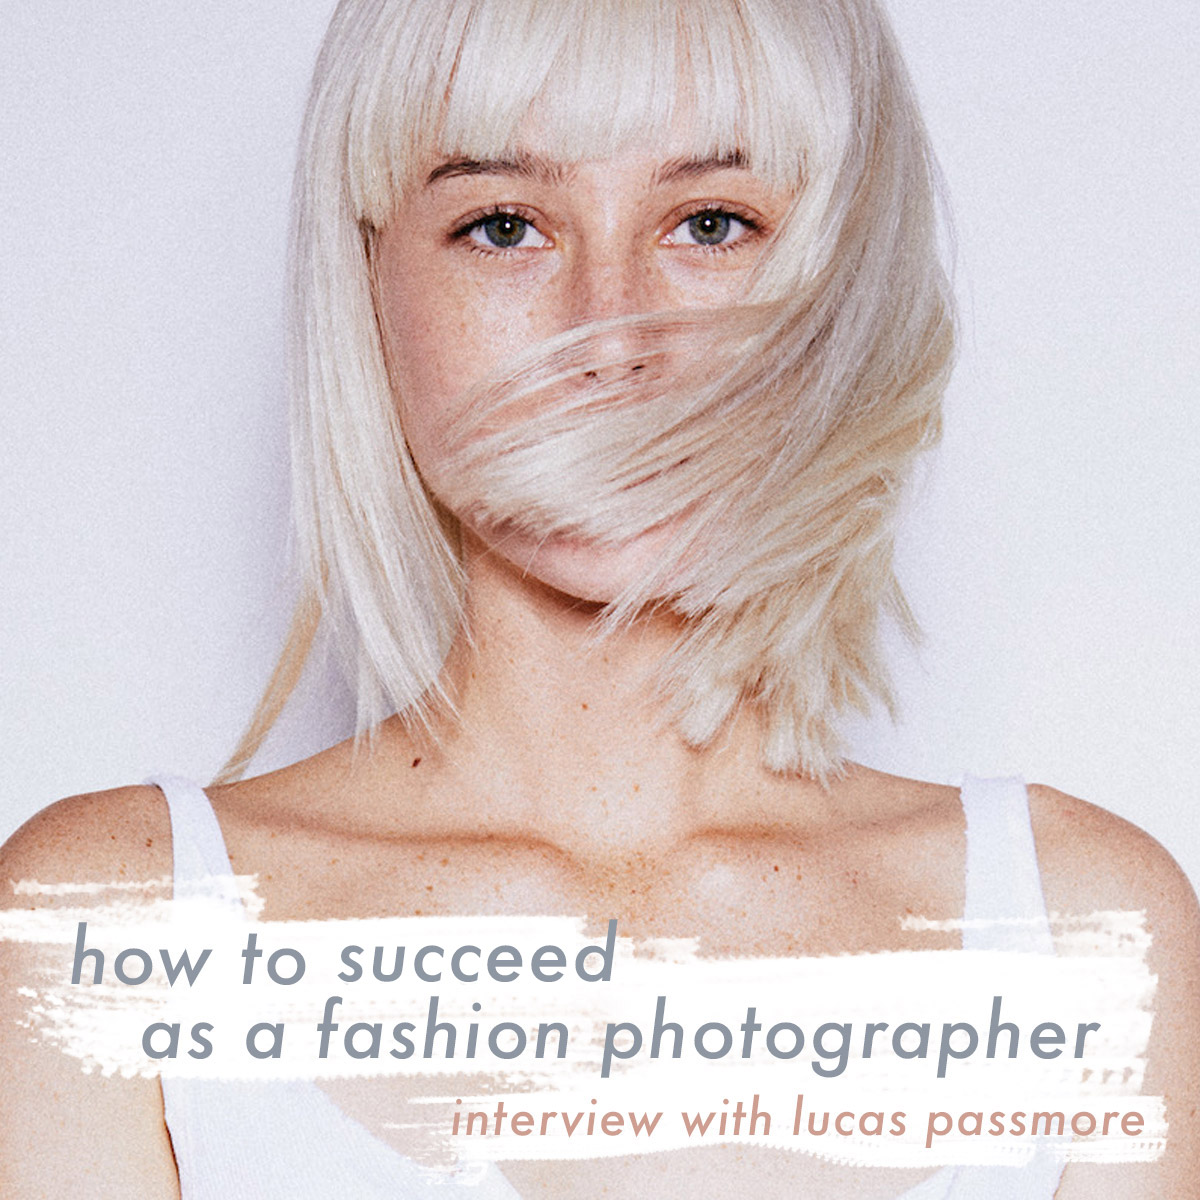 how-to-succeed-as-fashion-photographer.jpg